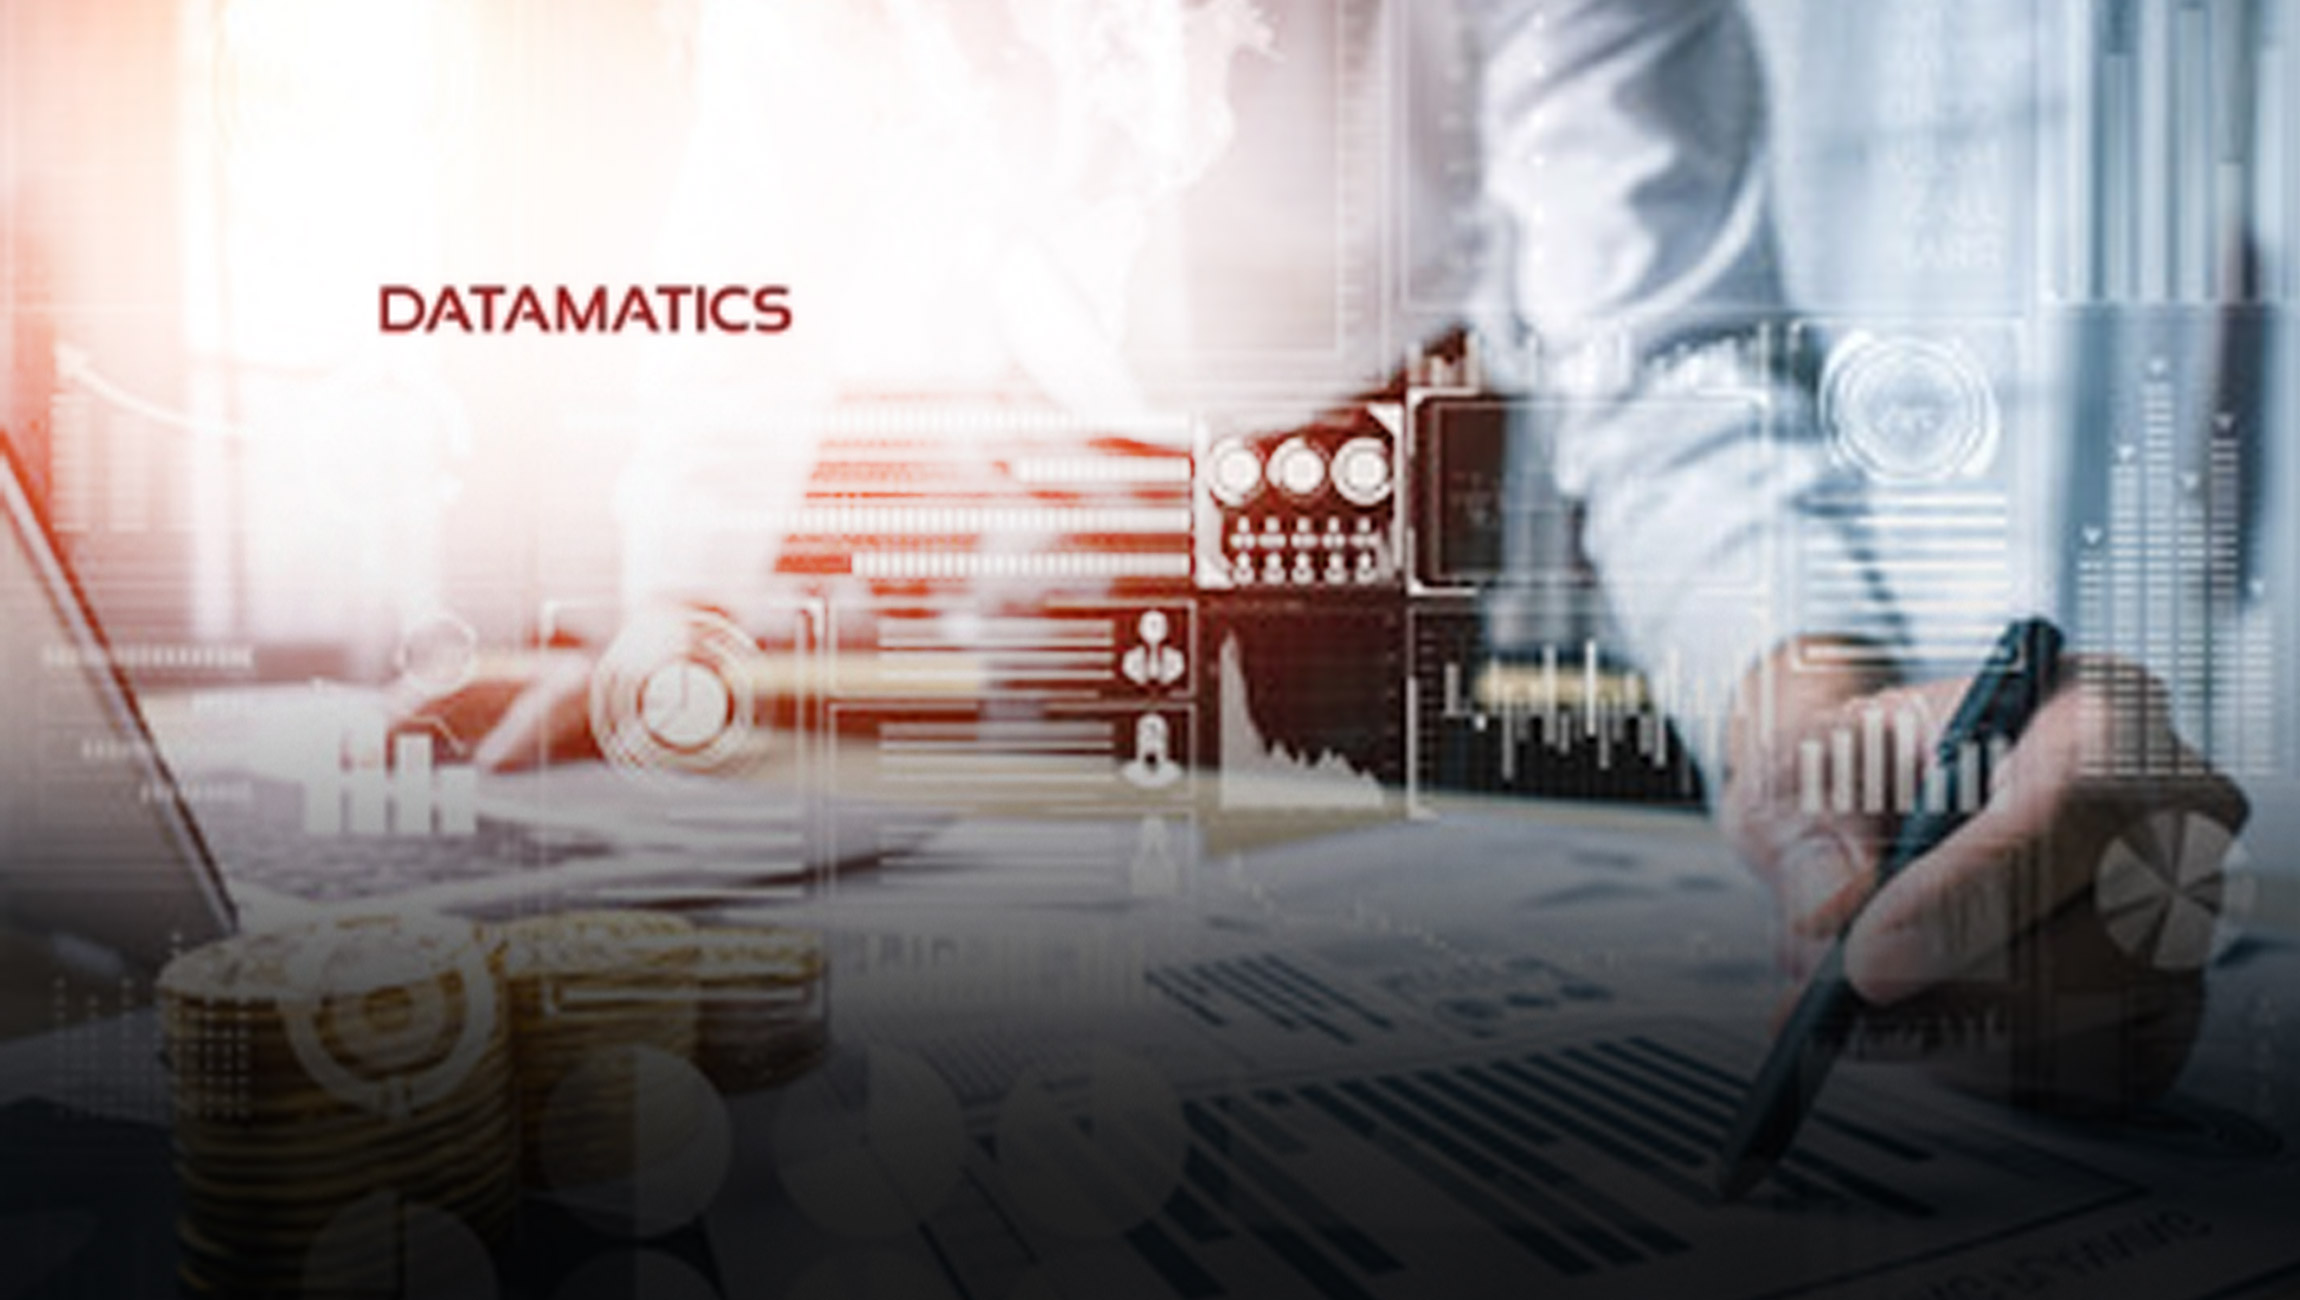 Datamatics simplifies document processing with a new AI-enabled TruCap+ IDP solution